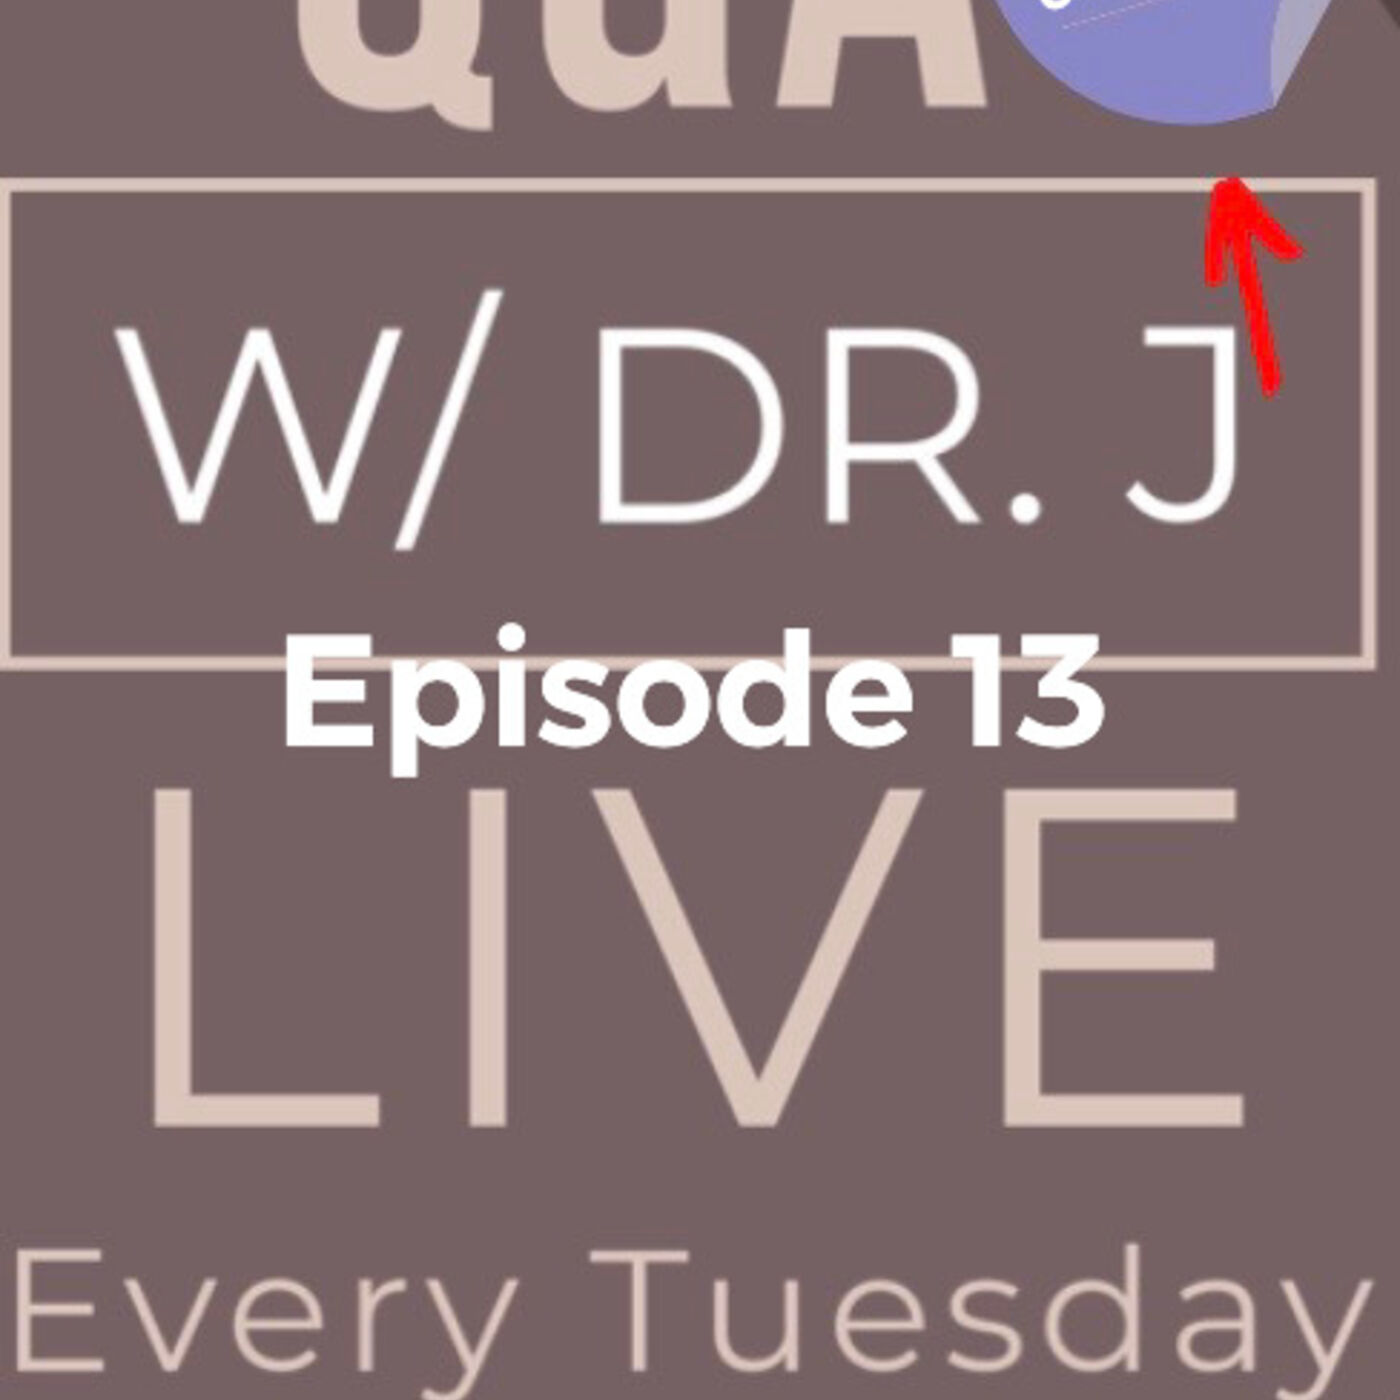 EP 13 Q&A with Dr. Jeneby | Weird  Abbreviations and Taking Care of Your Face